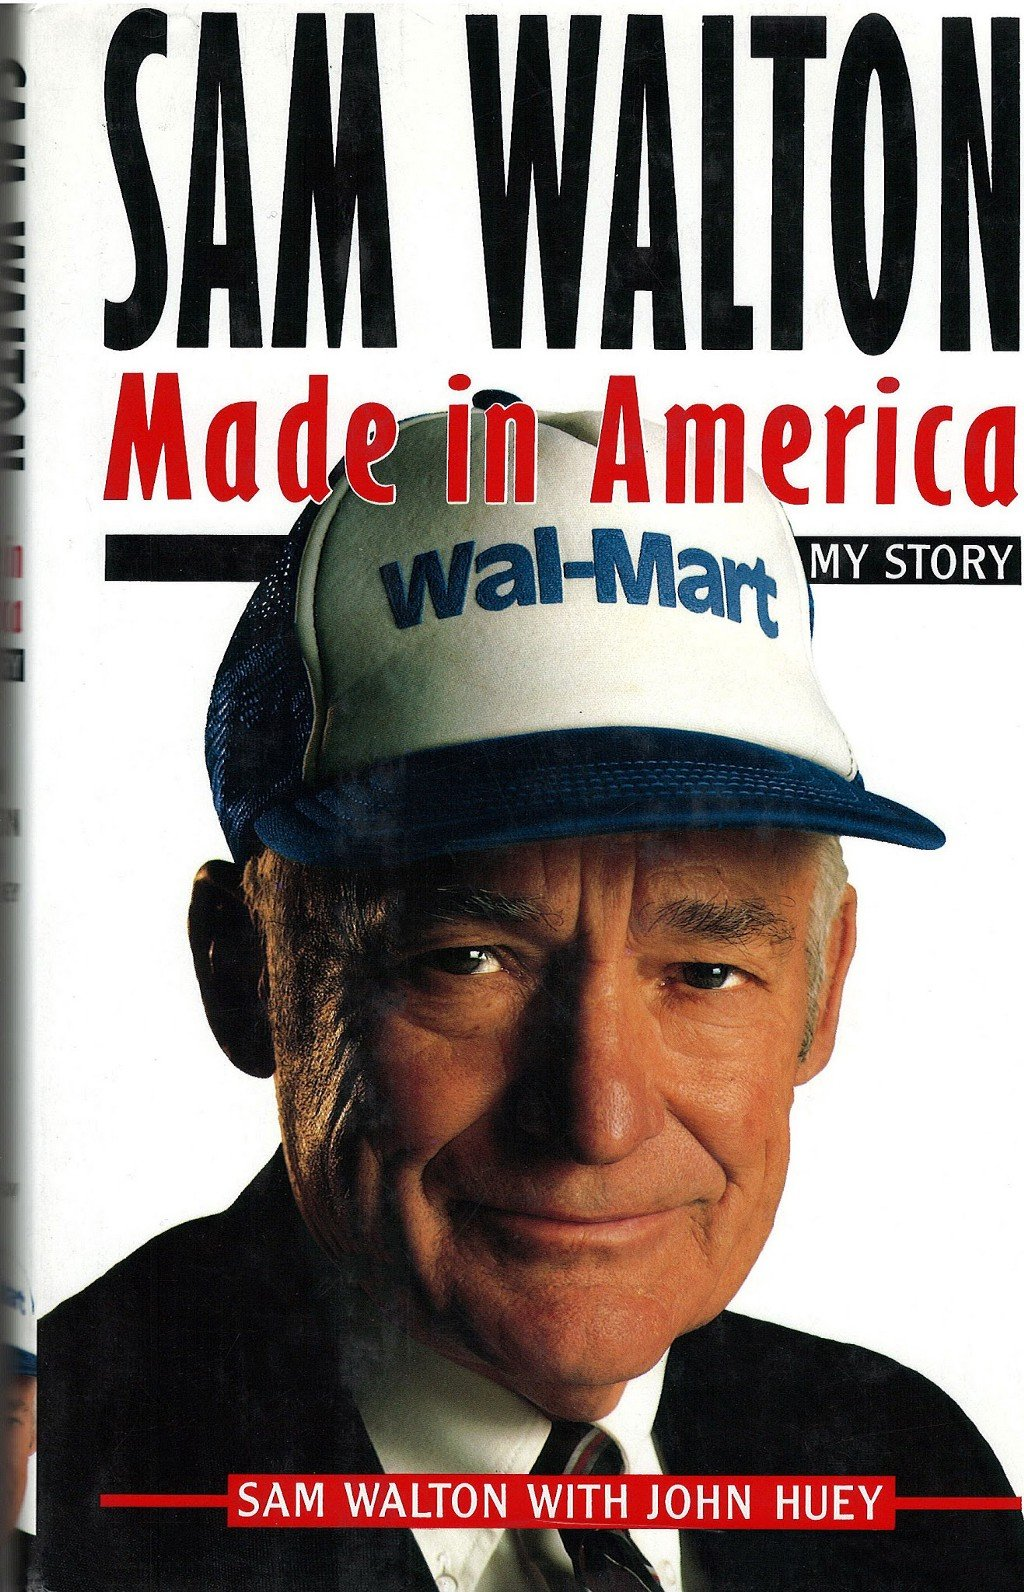 Sam Walton Made in America Book